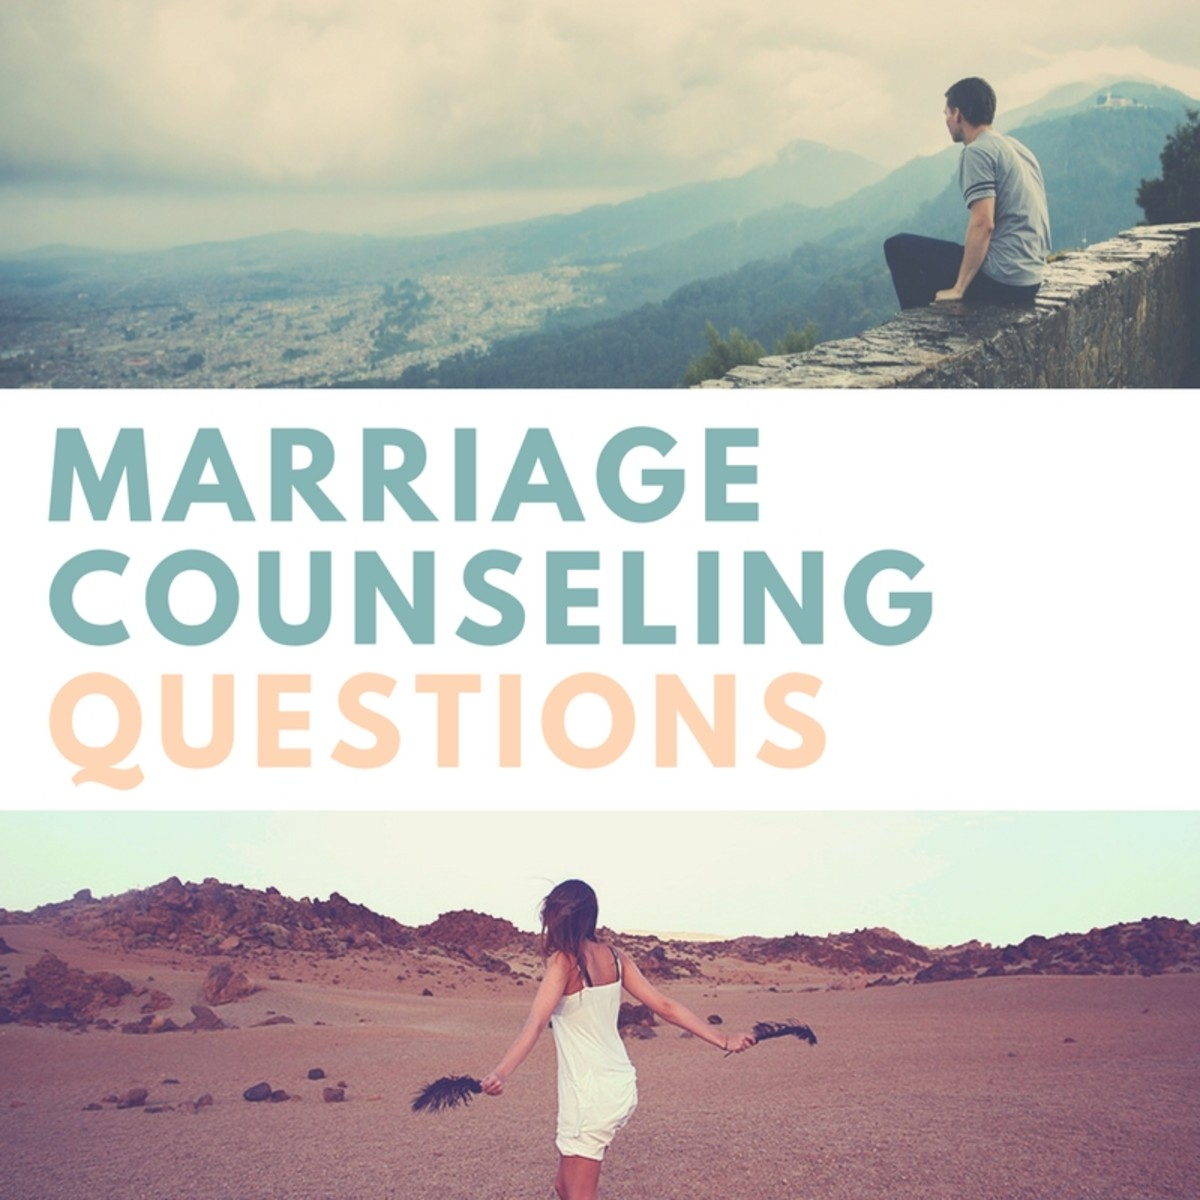 Marriage counseling questions you can ask each other pairedlife solutioingenieria Images